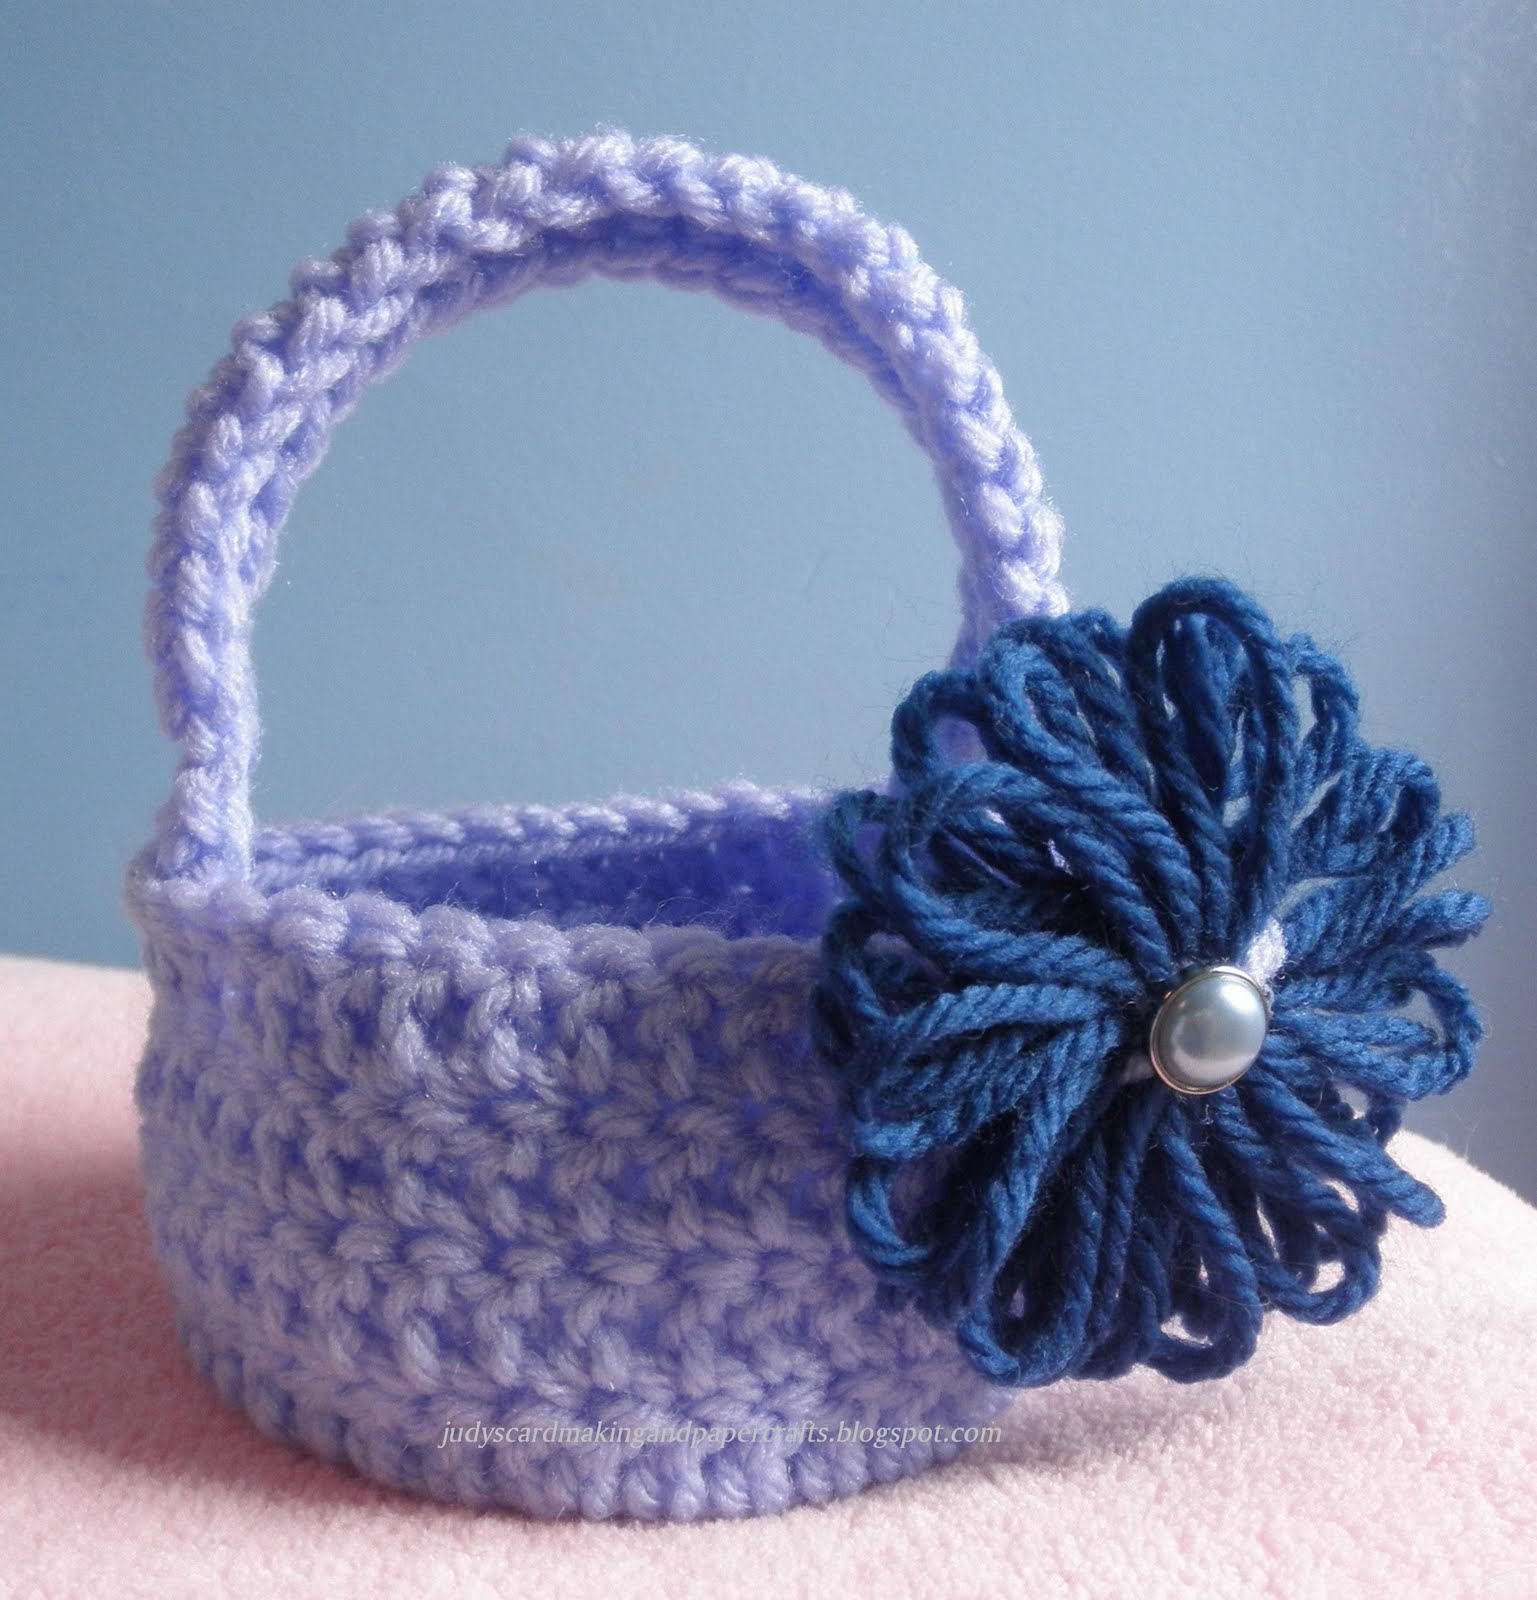 Crocheting Baskets : Crocheted basket!